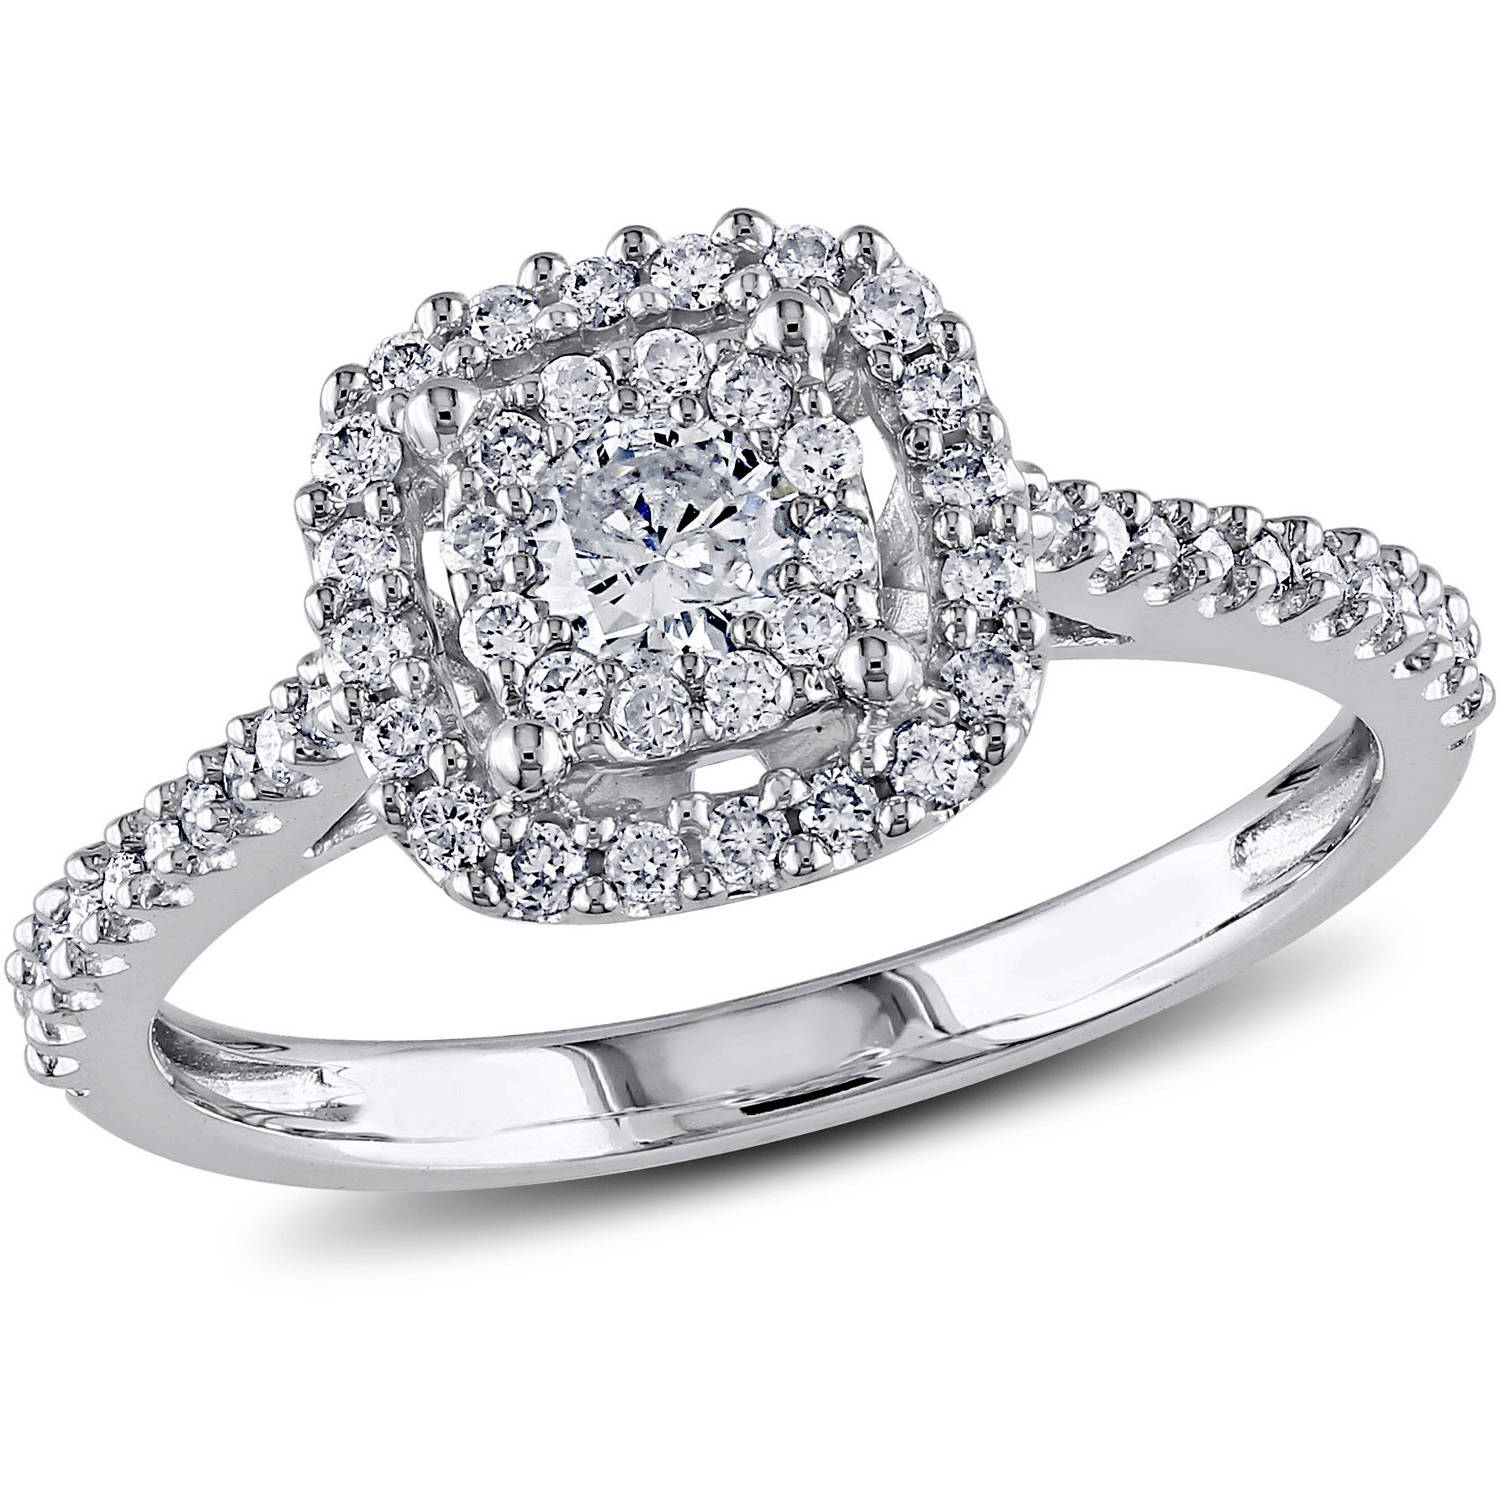 Miabella 1 2 Carat T.W. Certified Diamond 10kt White Gold Double Halo Engagement Ring by Delmar Manufacturing LLC